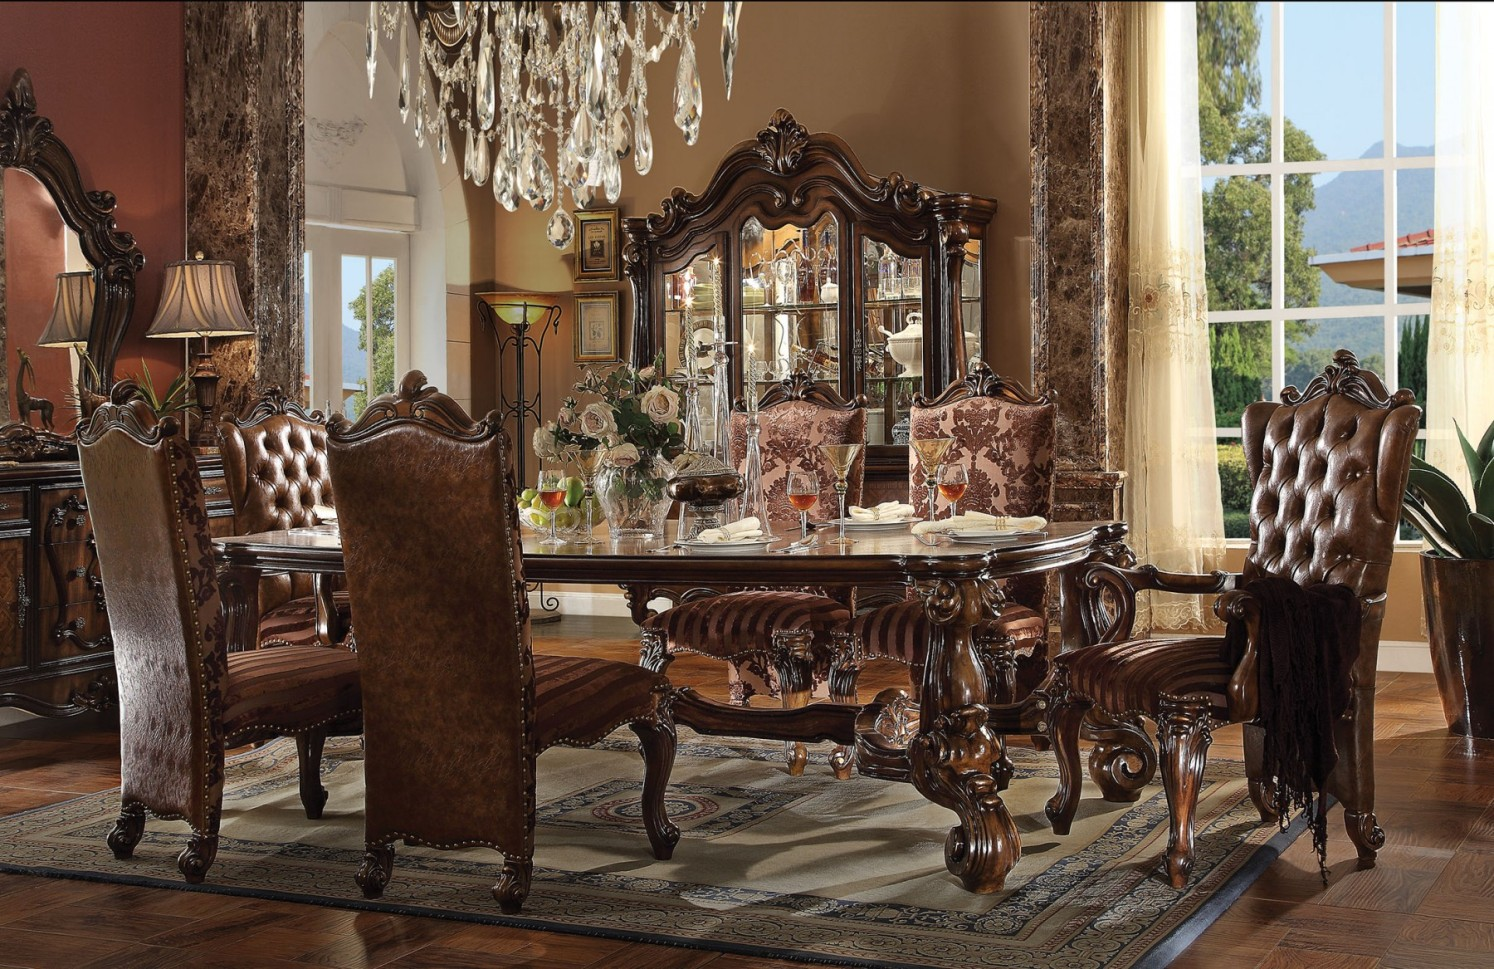 Formal dining room sets how elegance is made possible dining room sets dining sets - Dining room sets ...